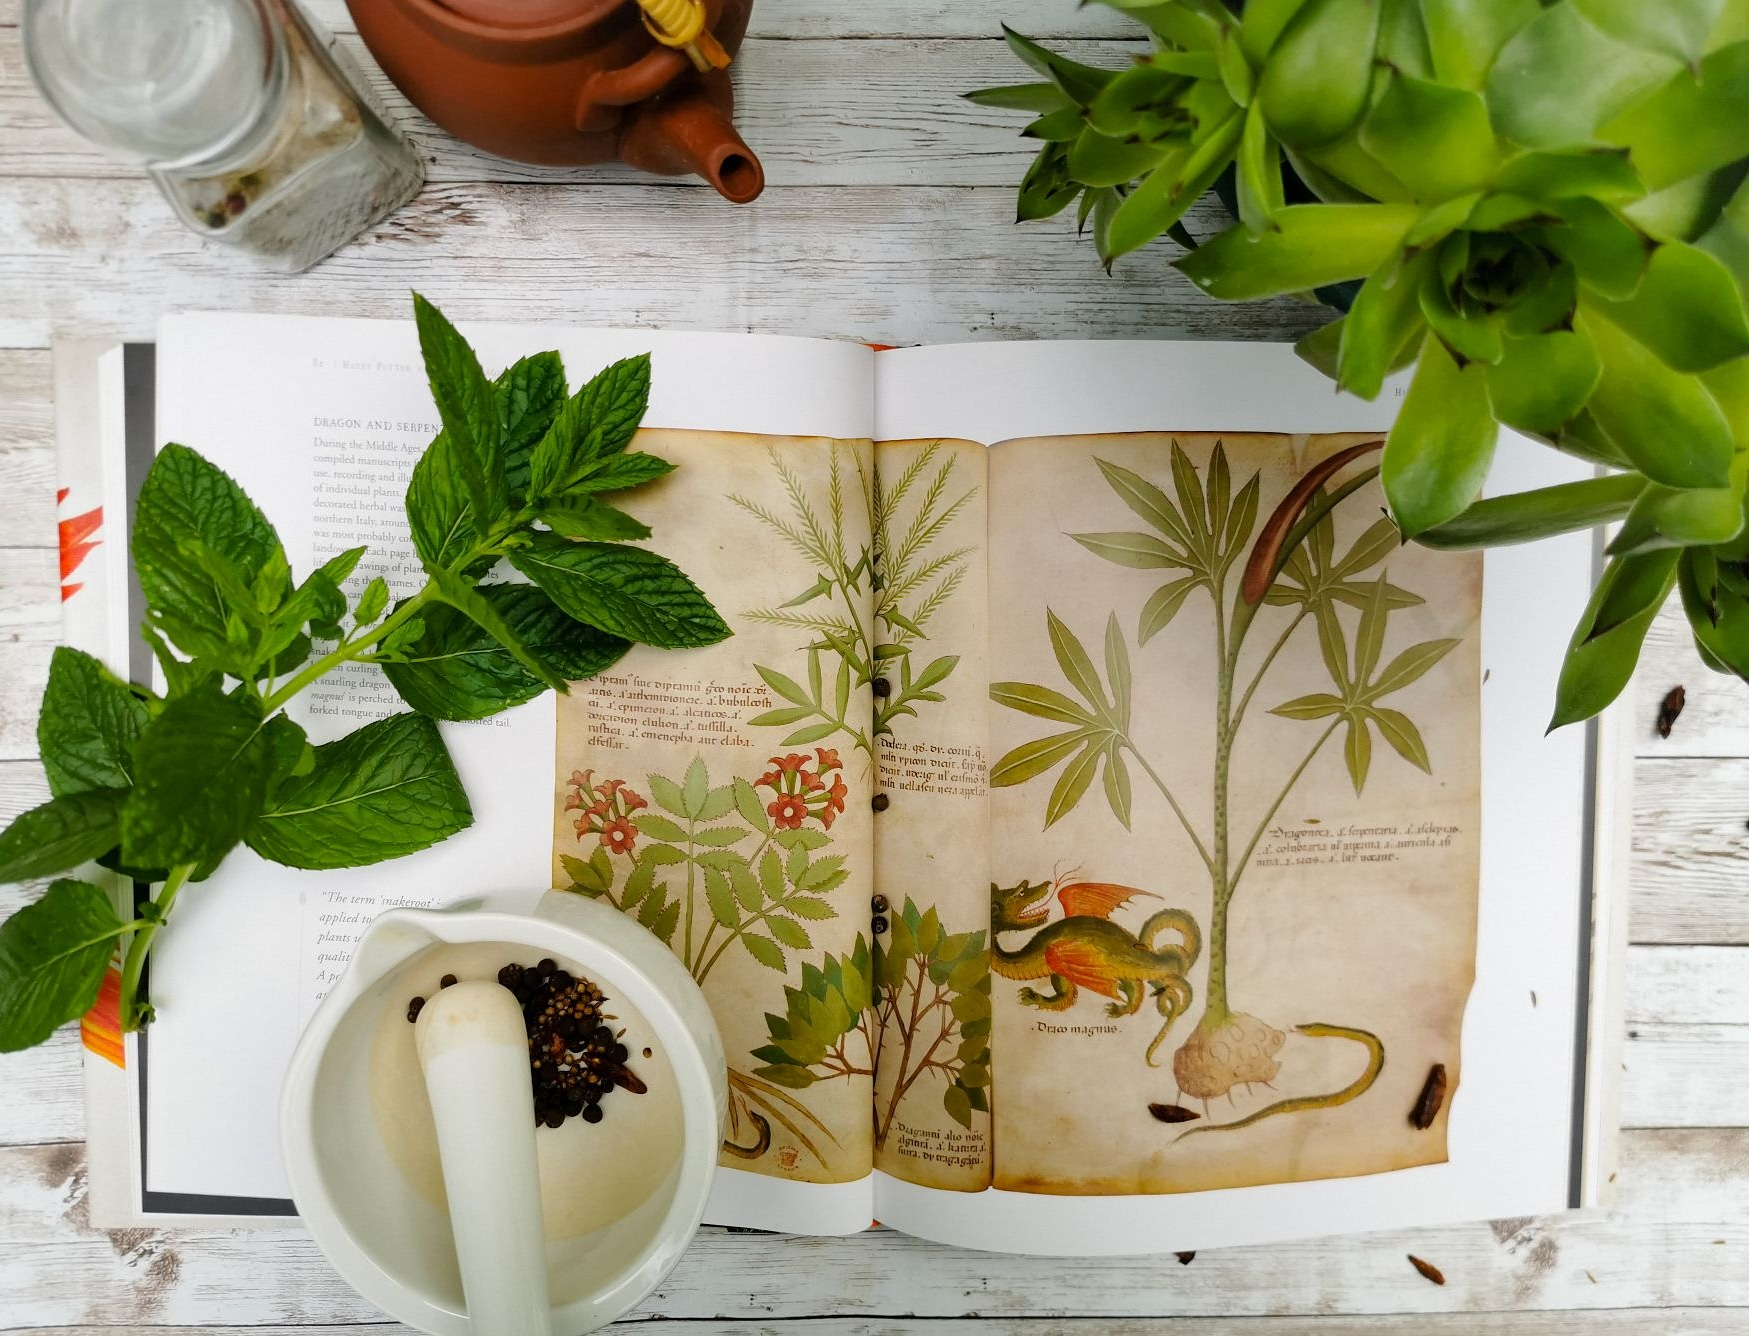 History of magic book with herbology elements